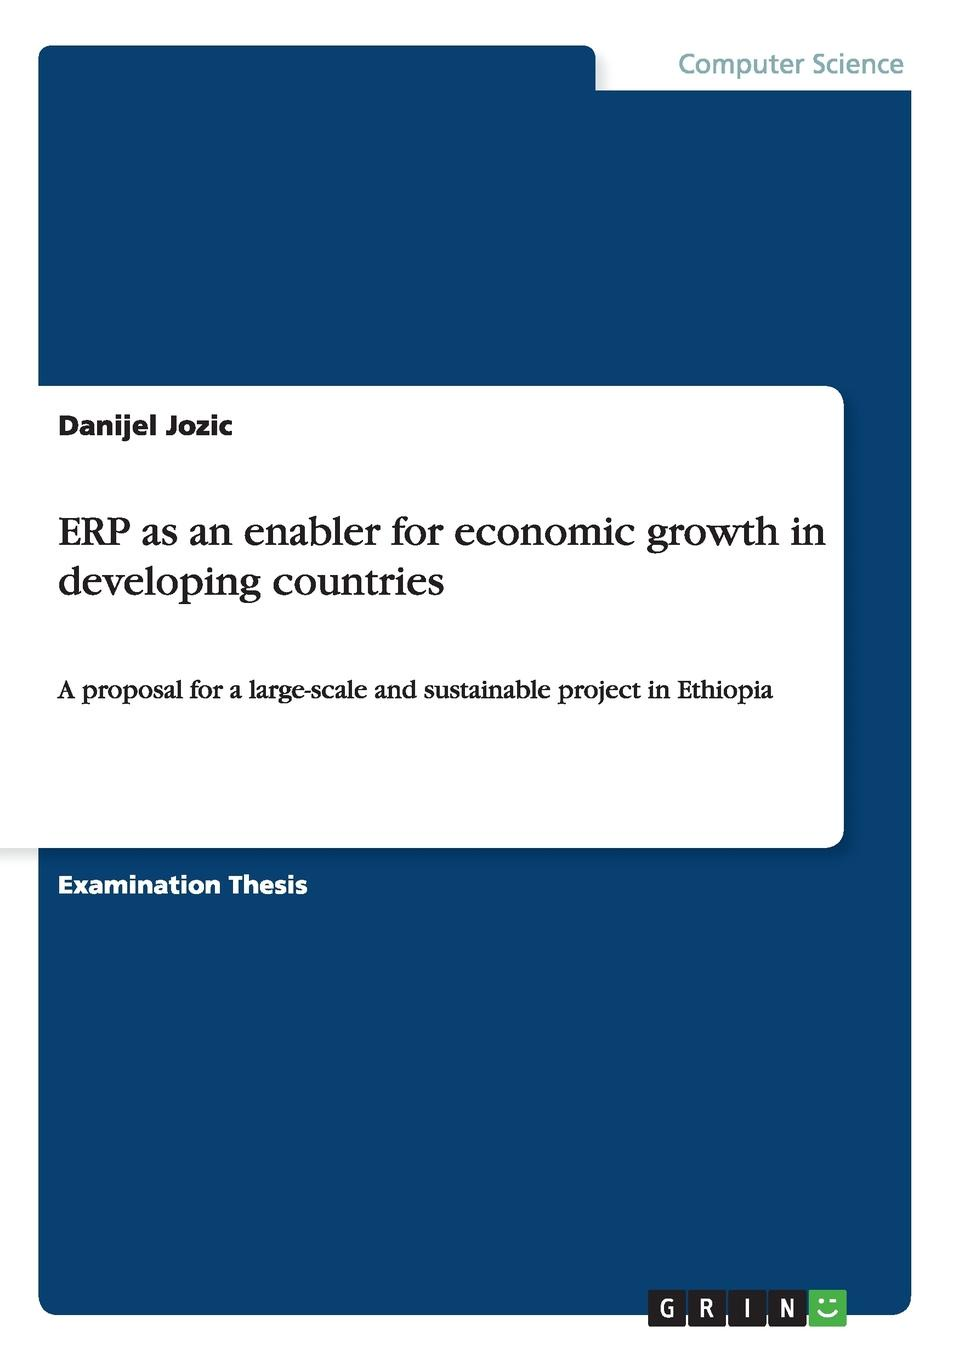 Danijel Jozic ERP as an enabler for economic growth in developing countries halil kiymaz market microstructure in emerging and developed markets price discovery information flows and transaction costs